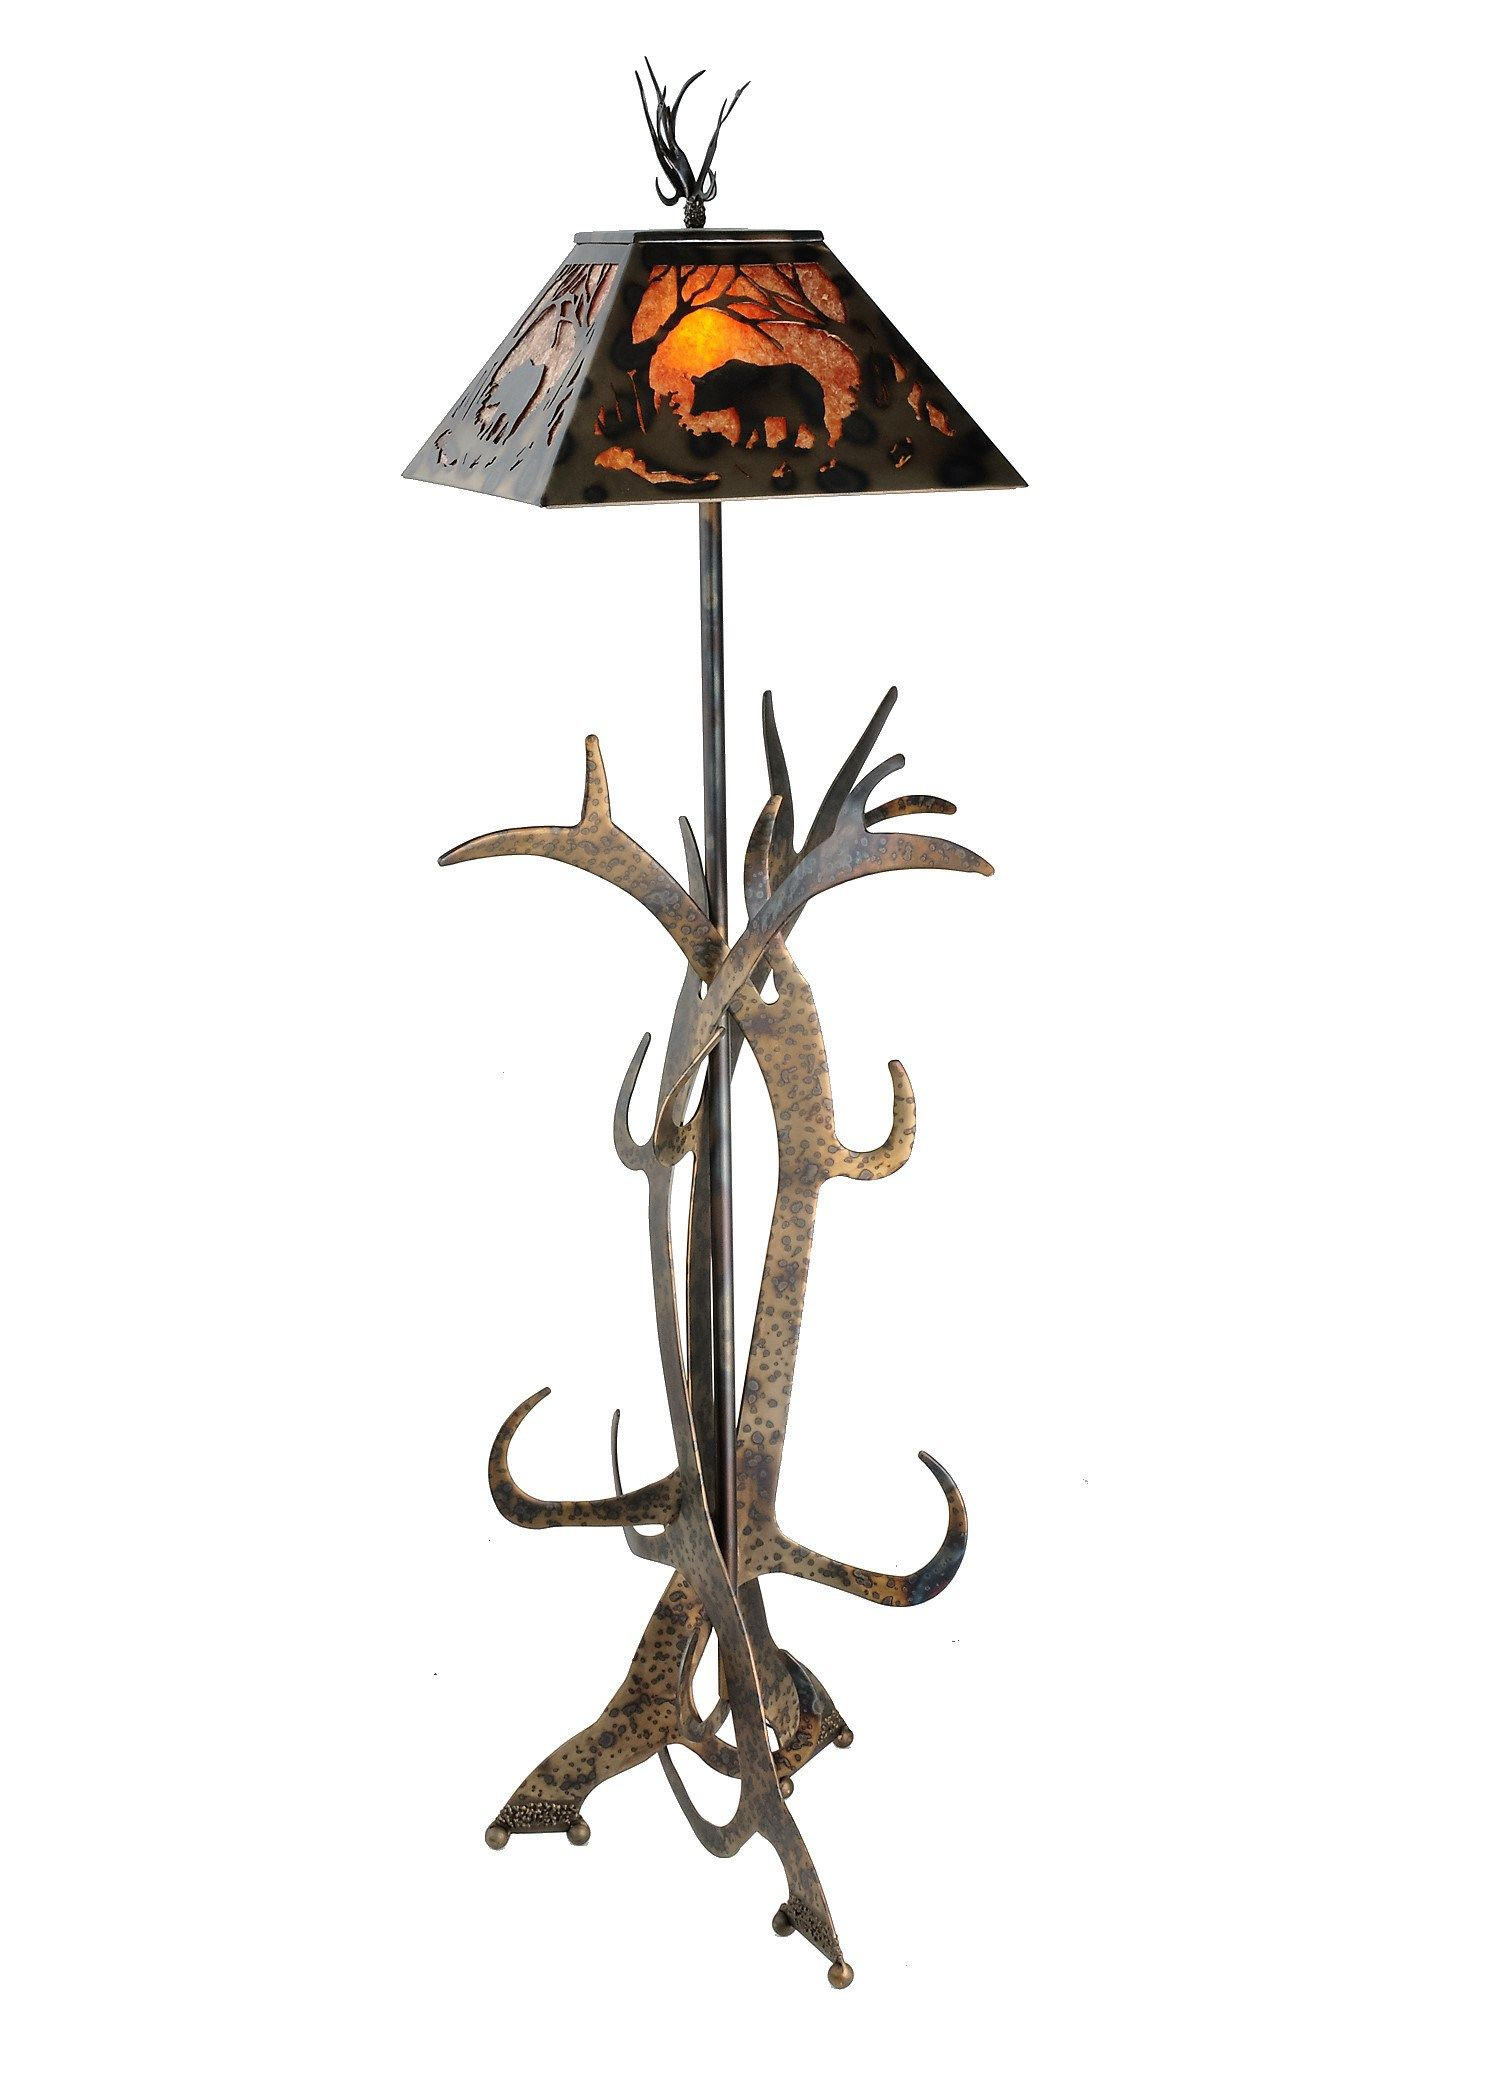 Rustic floor lamp w mica shade forged steel antler base all rustic floor lamp w mica shade forged steel antler base geotapseo Choice Image